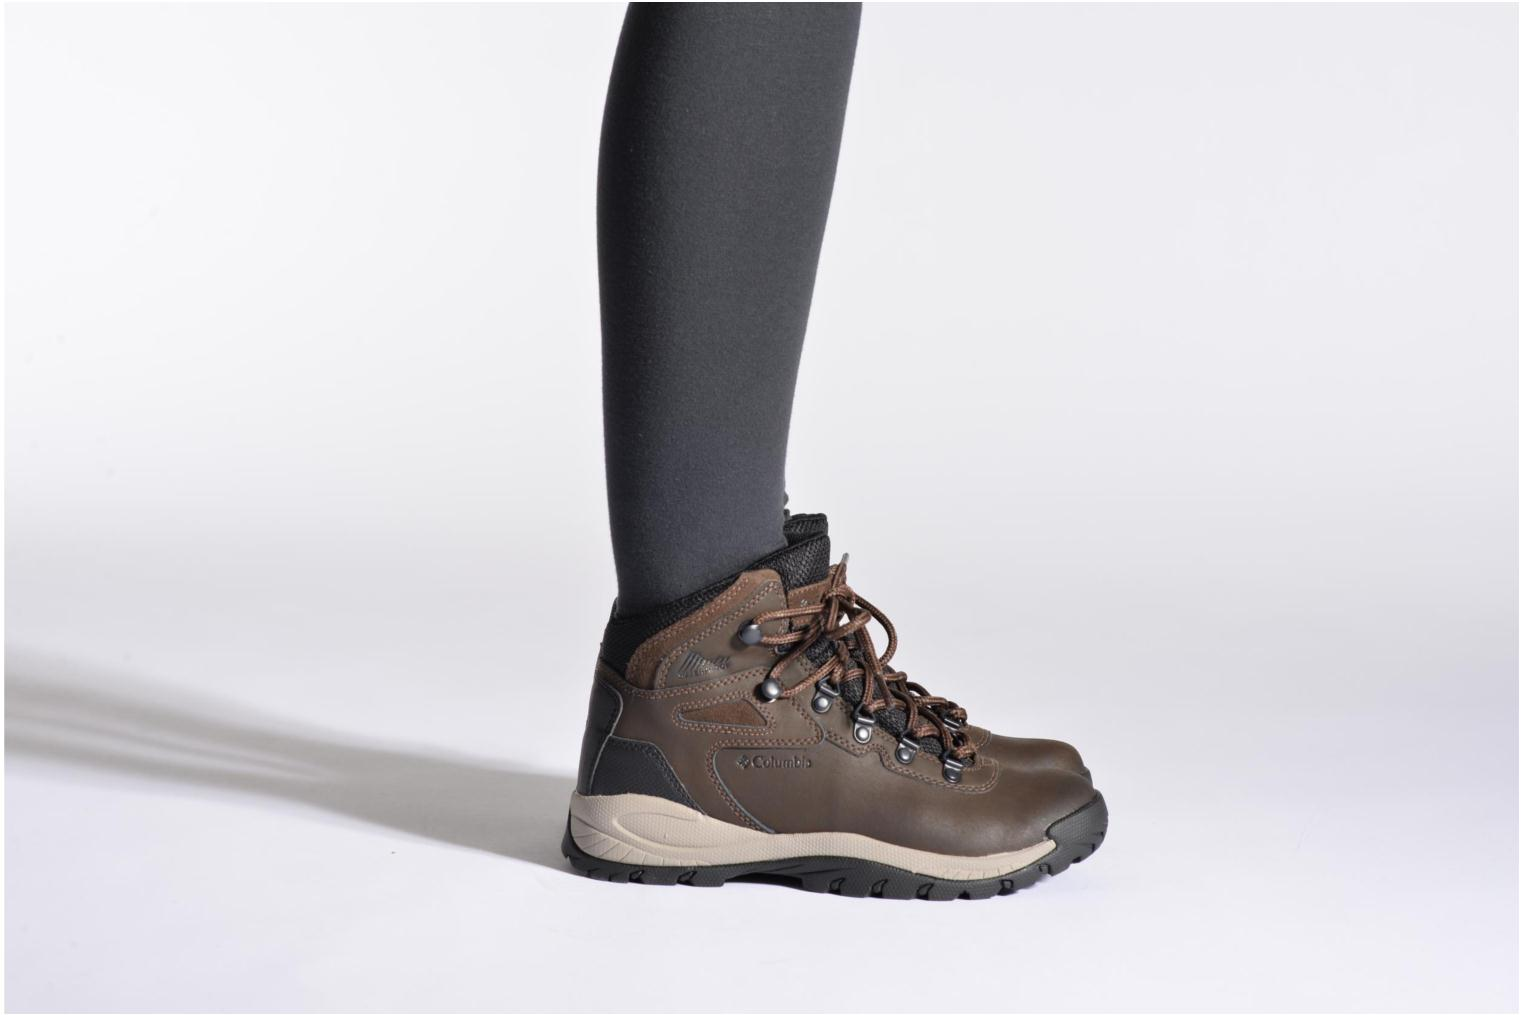 Chaussures de sport Columbia Newton Ridge Plus II Waterproof W Marron vue bas / vue portée sac